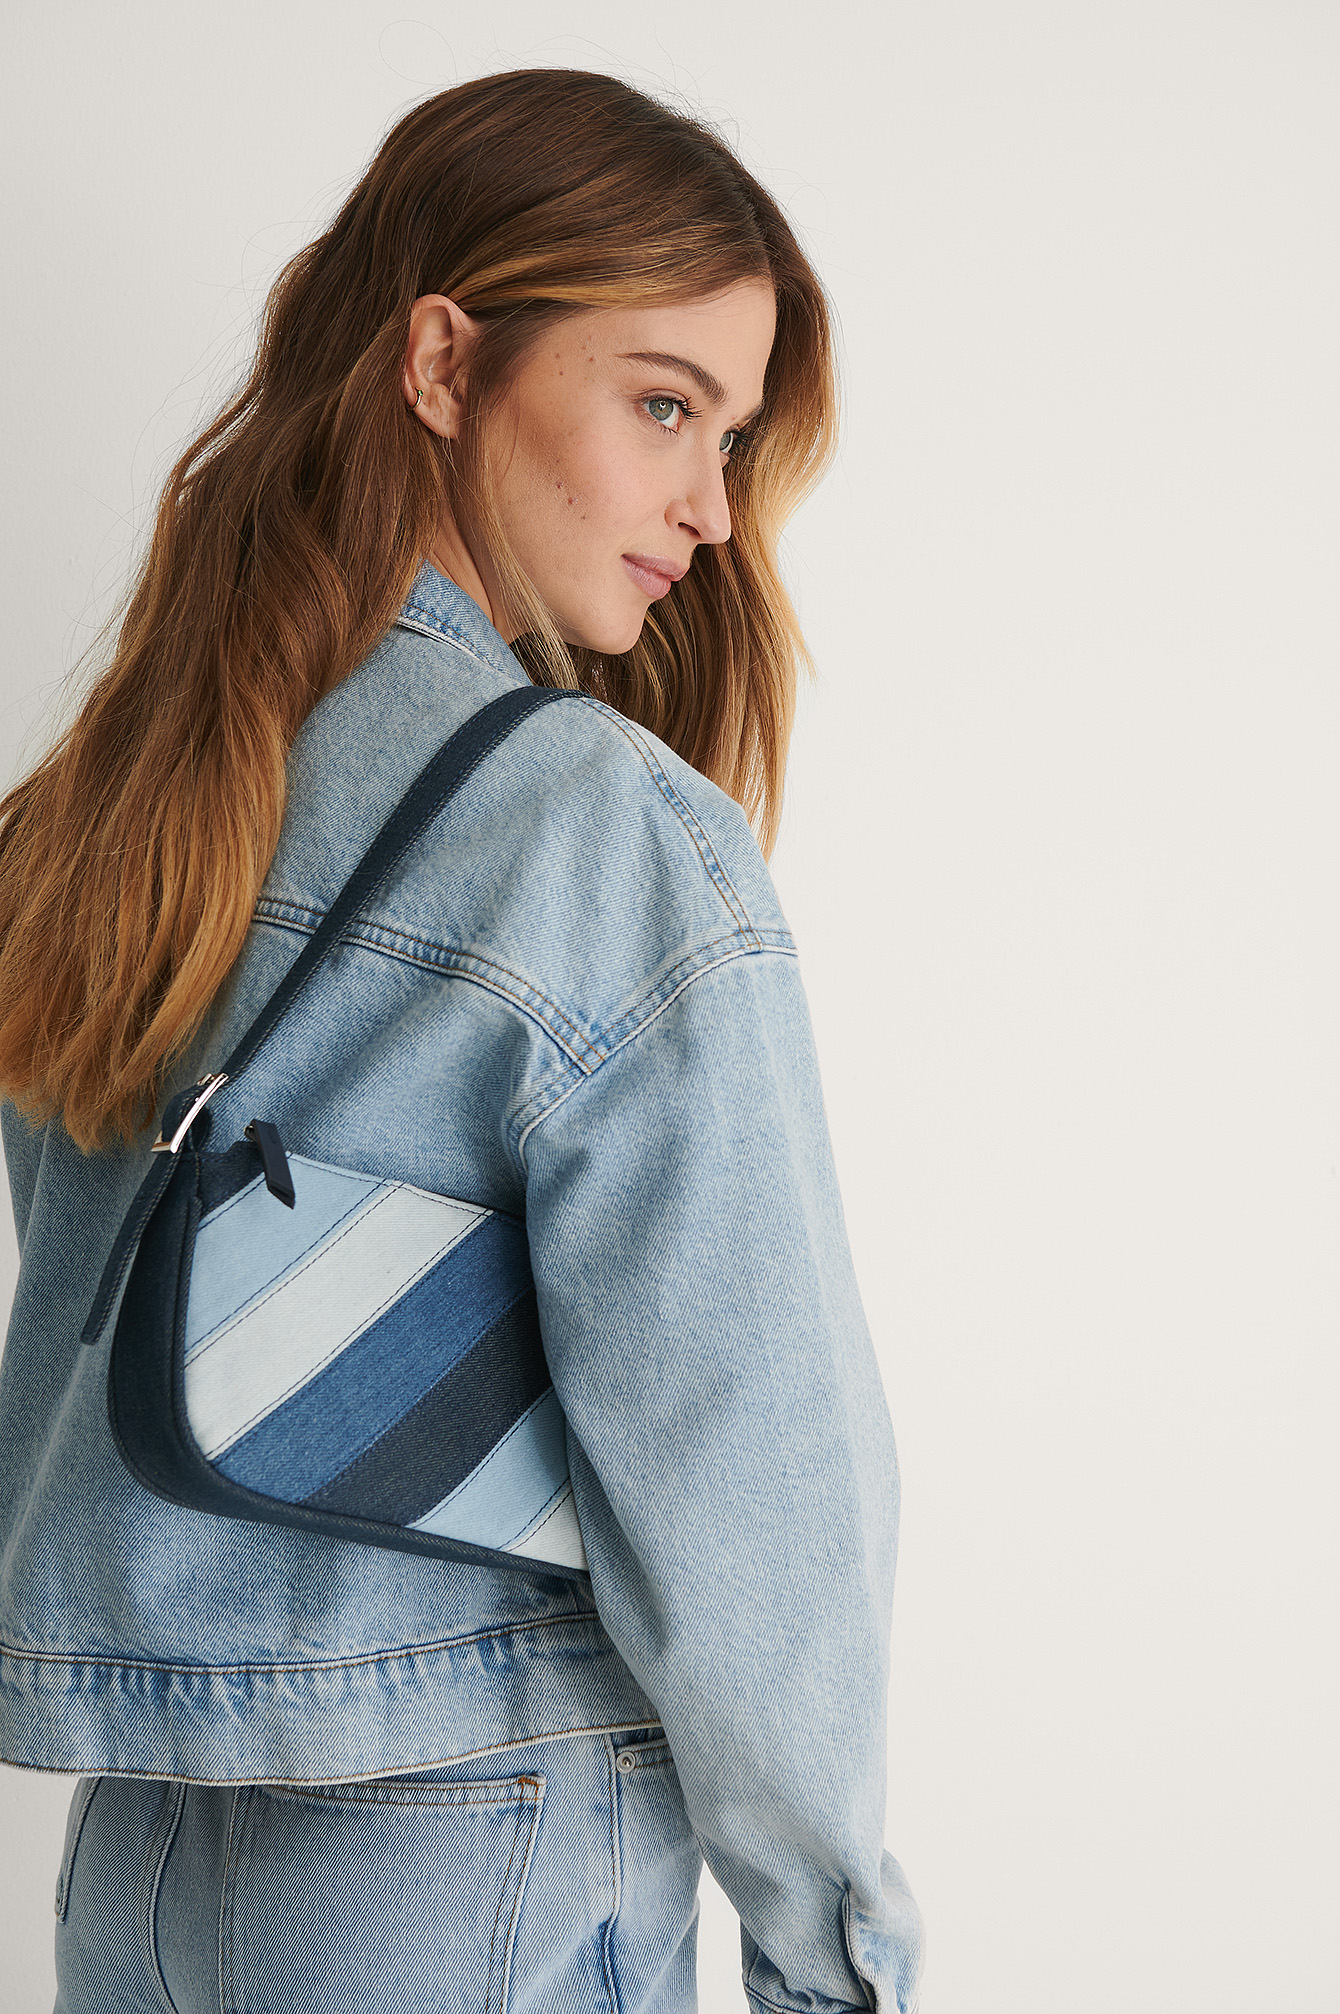 Blue Patchwork Denim Baguette Bag